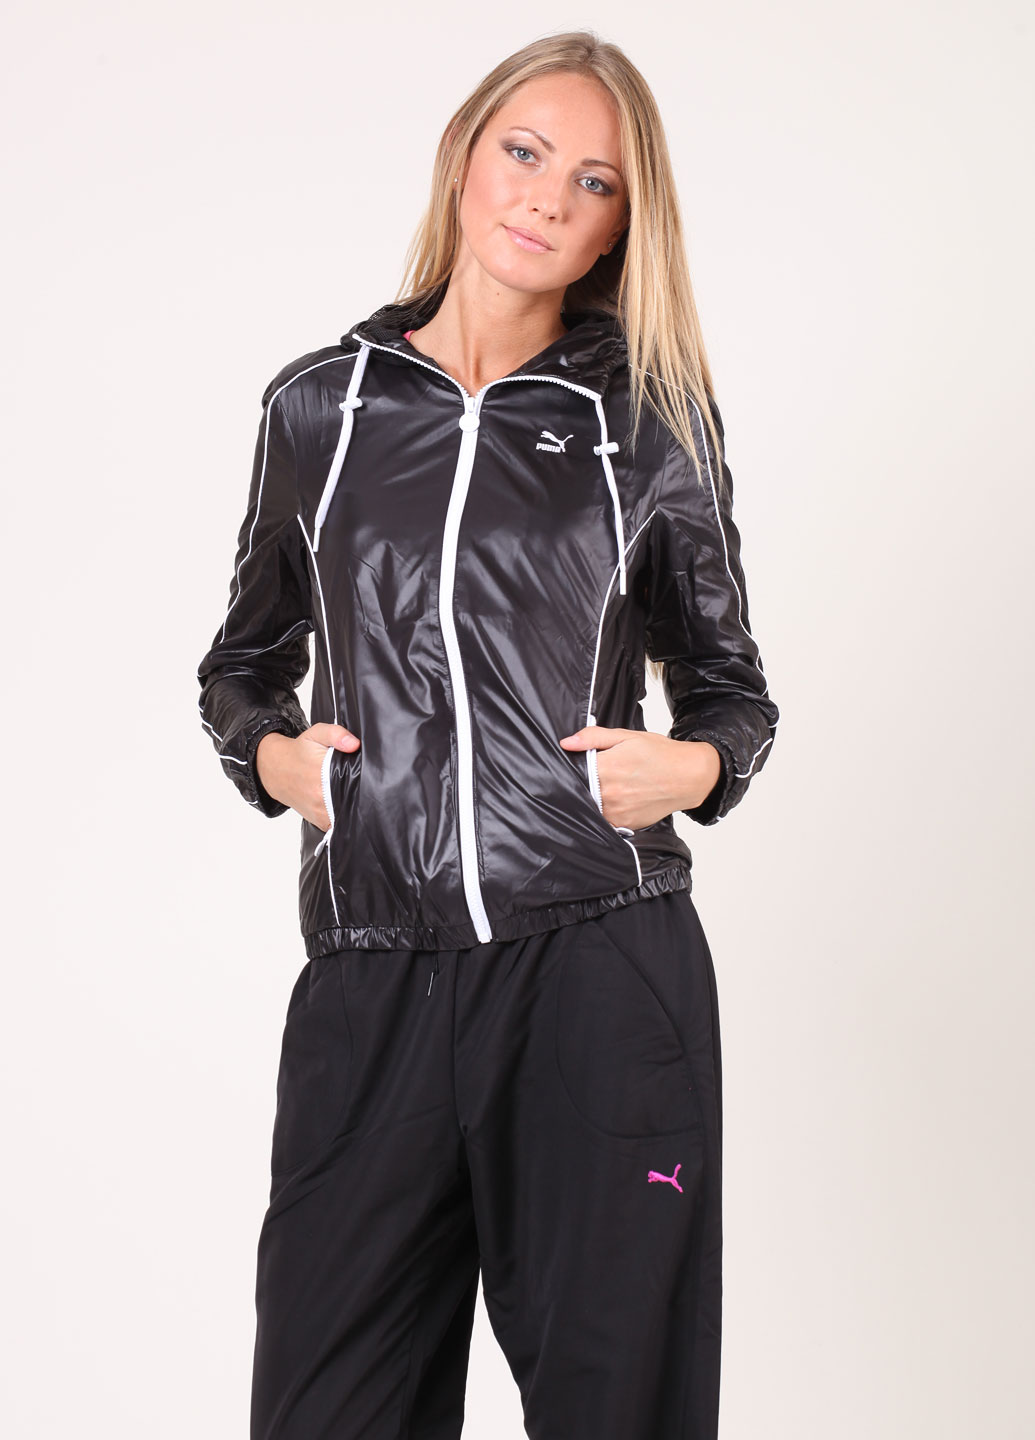 Shiny Black Puma Jacket Full View